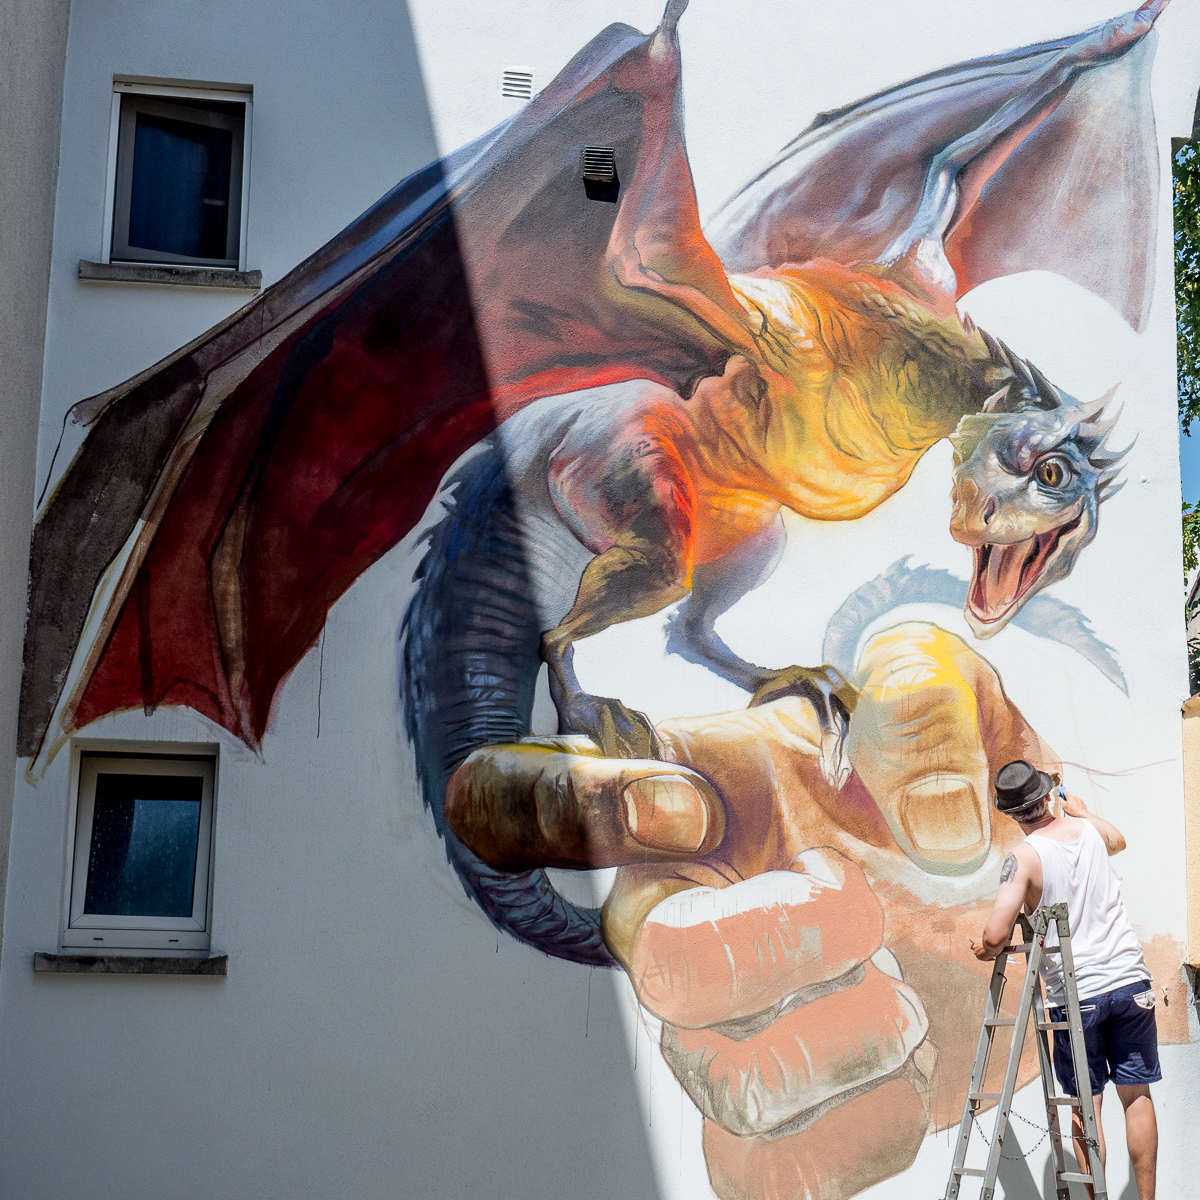 Graffiti in Bad Vilbel 2018 - Game of Thrones by Case